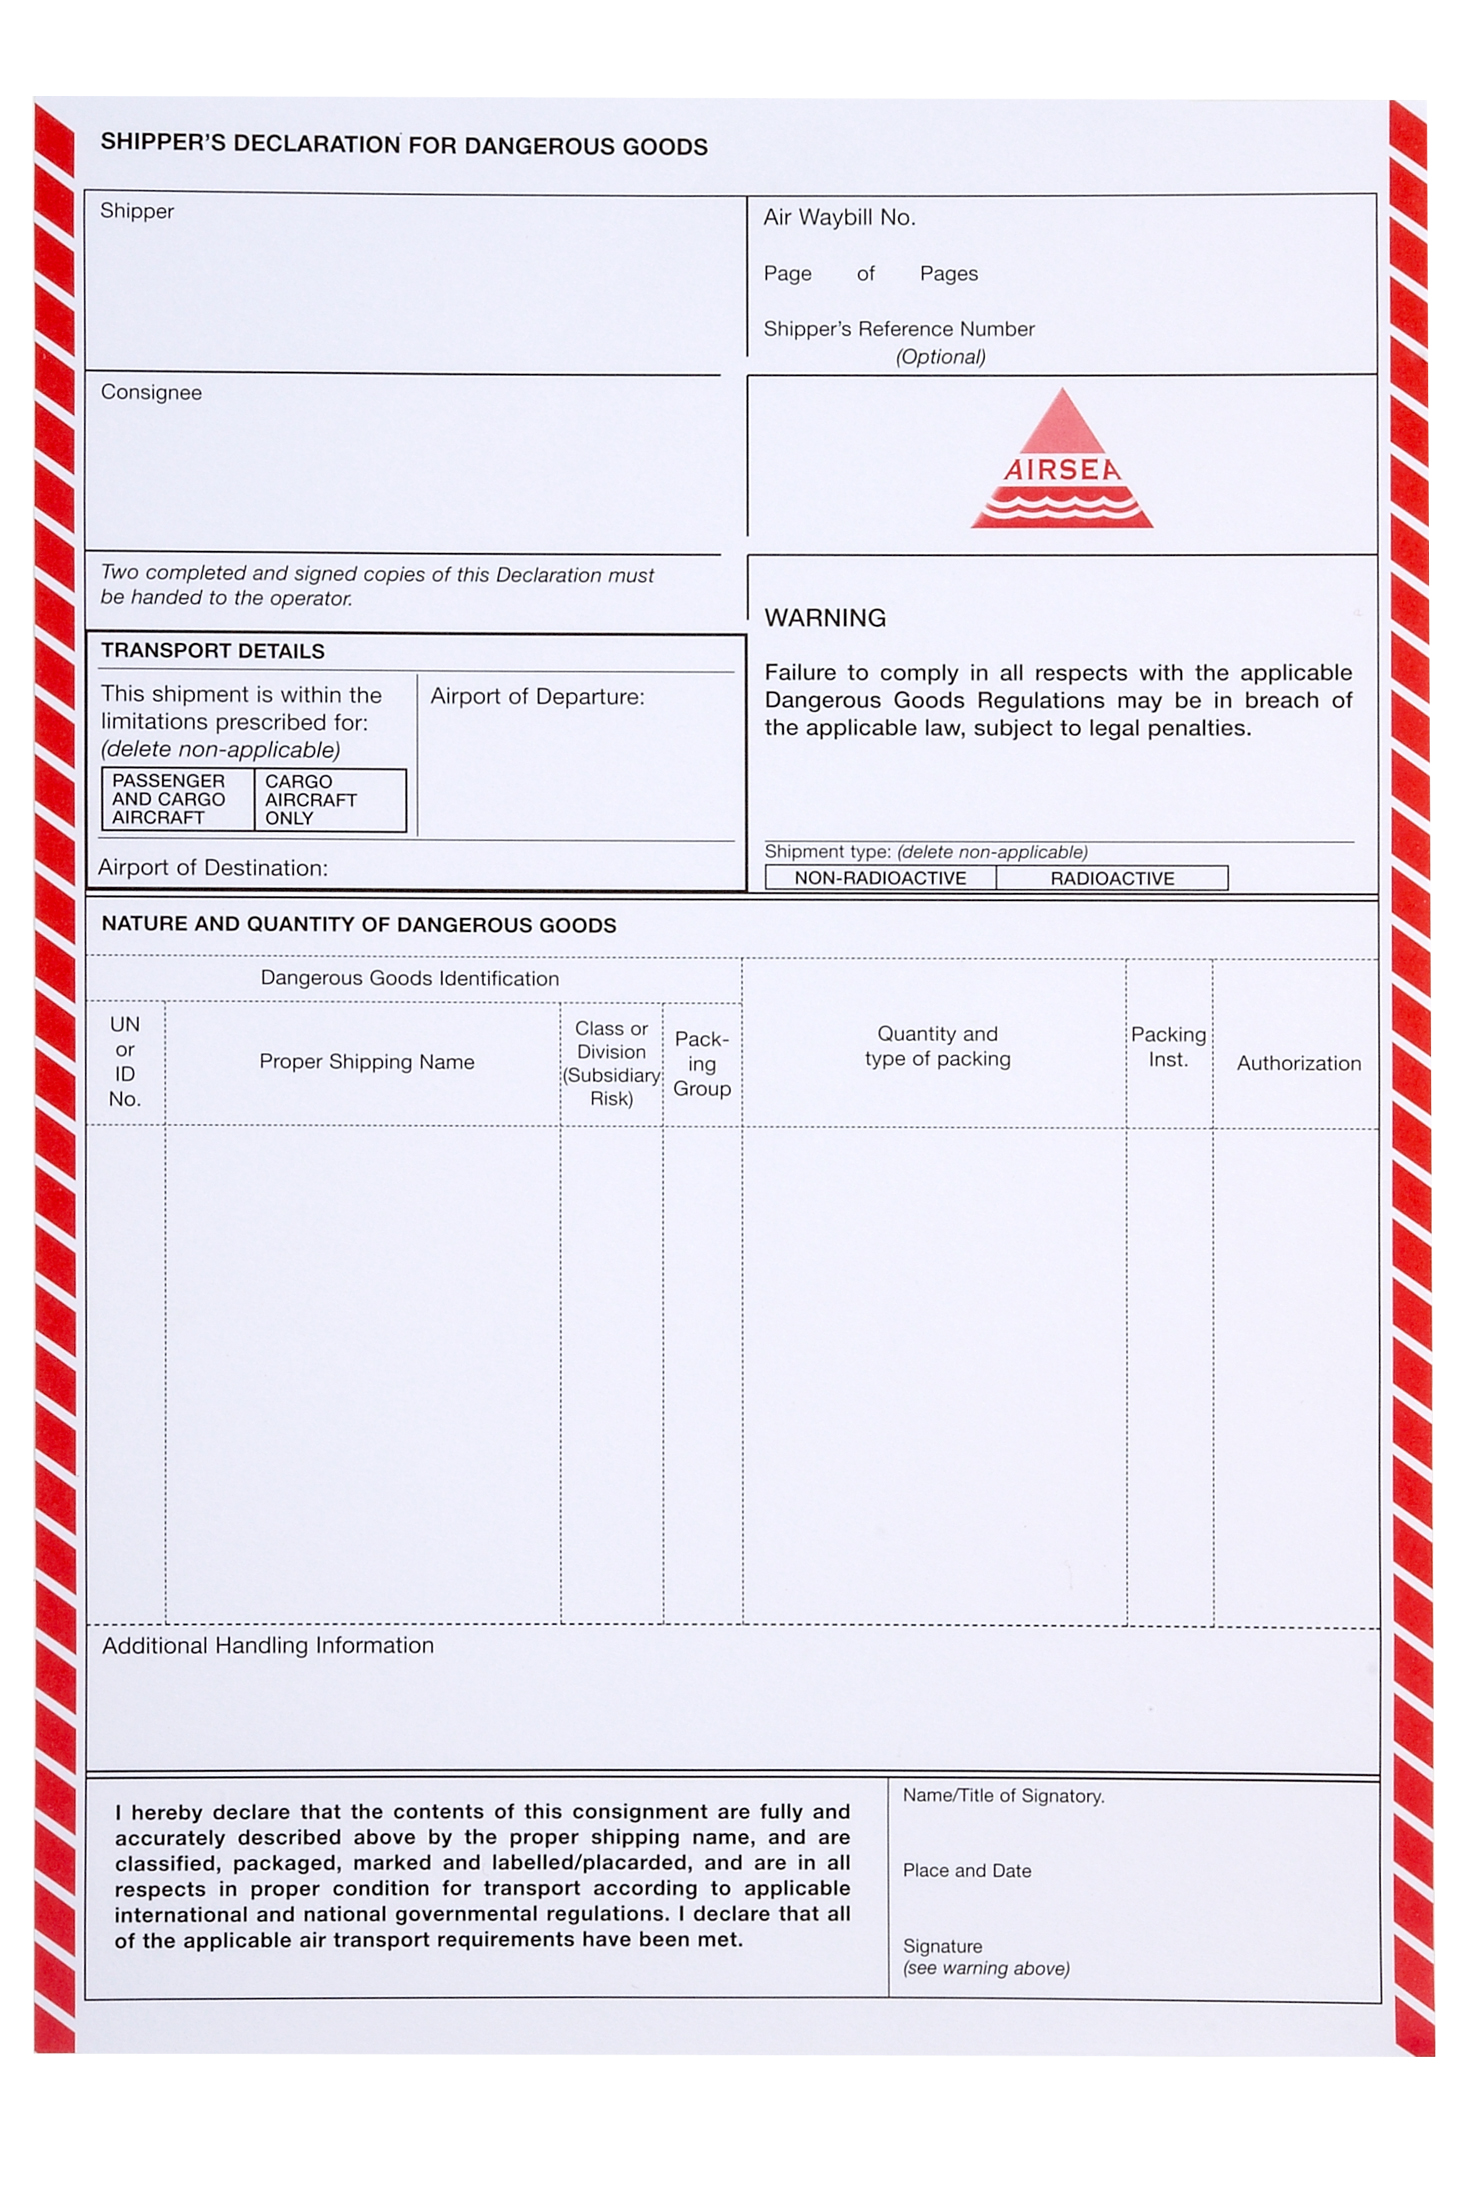 hazmat declaration form - Heart.impulsar.co